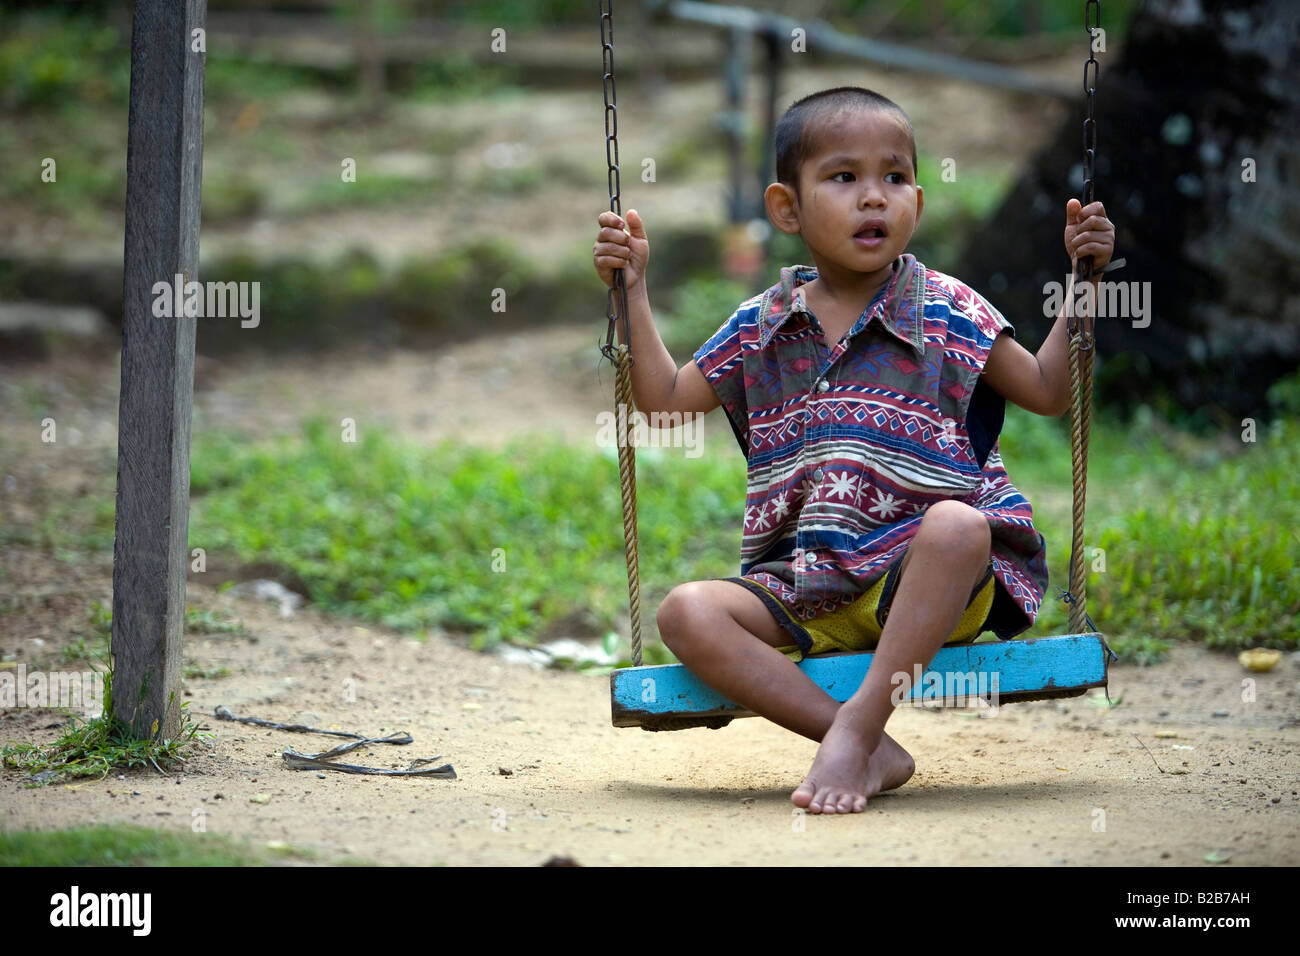 A Mangyan child plays on a swing in Panaytayan community near Mansalay, Oriental Mindoro, Philippines - Stock Image